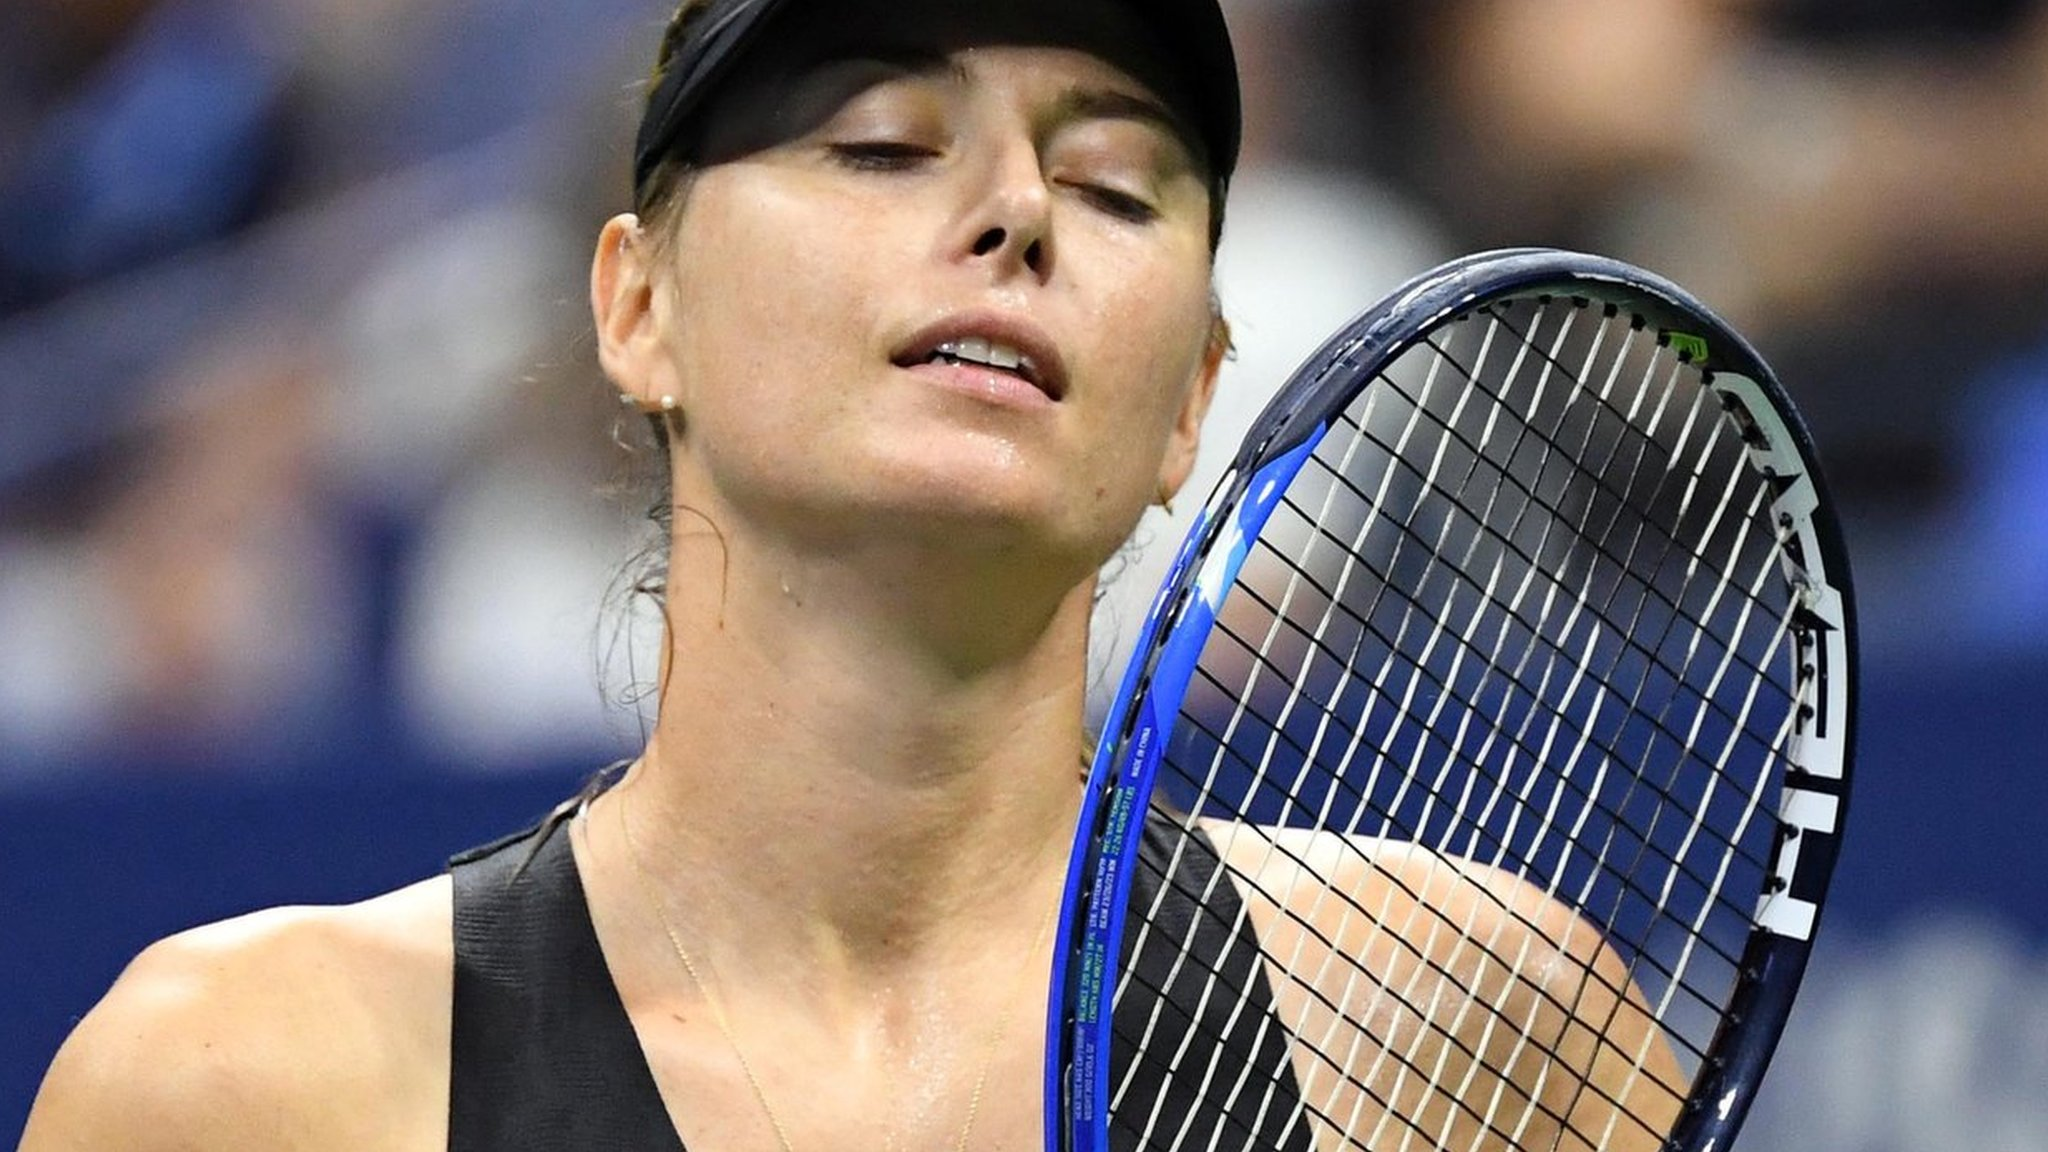 US Open 2018: Maria Sharapova says she has had tougher times after last-16 defeat